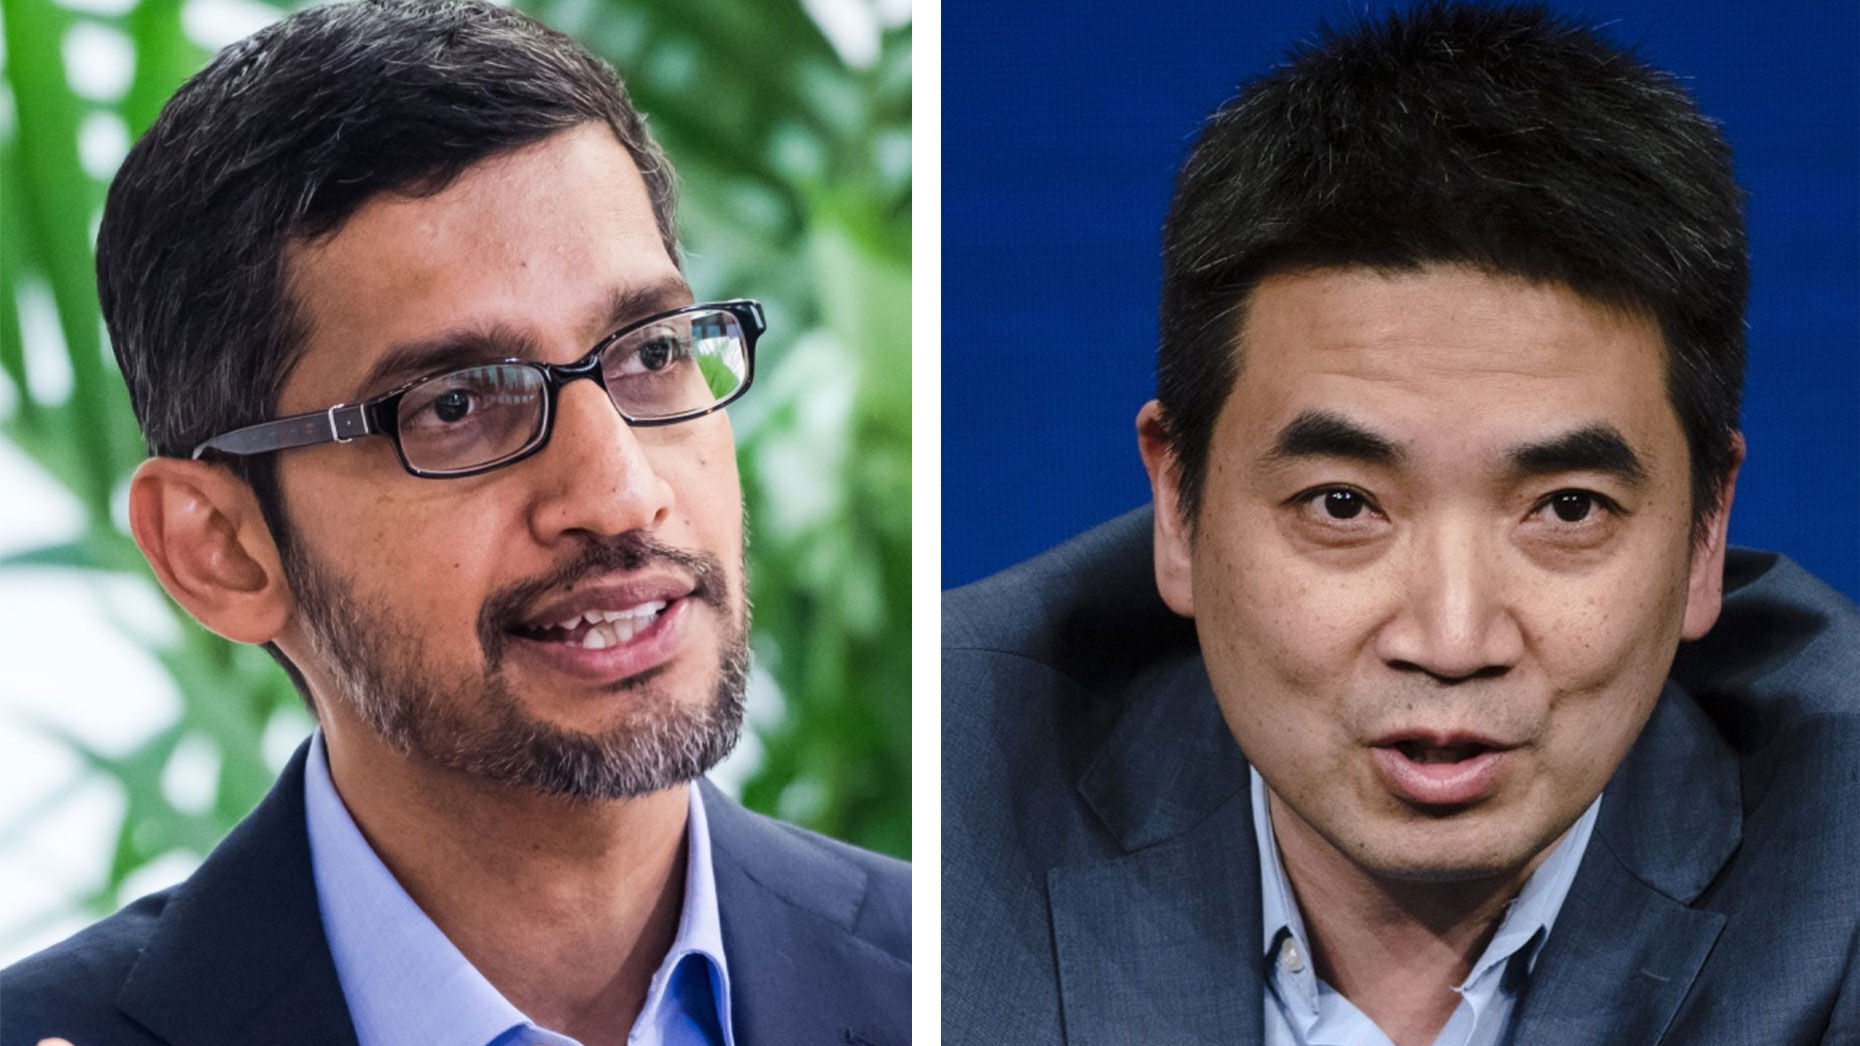 Sundar Pichai, CEO of Alphabet and Google, left, and Eric Yuan, CEO of Zoom. Photos by Bloomberg